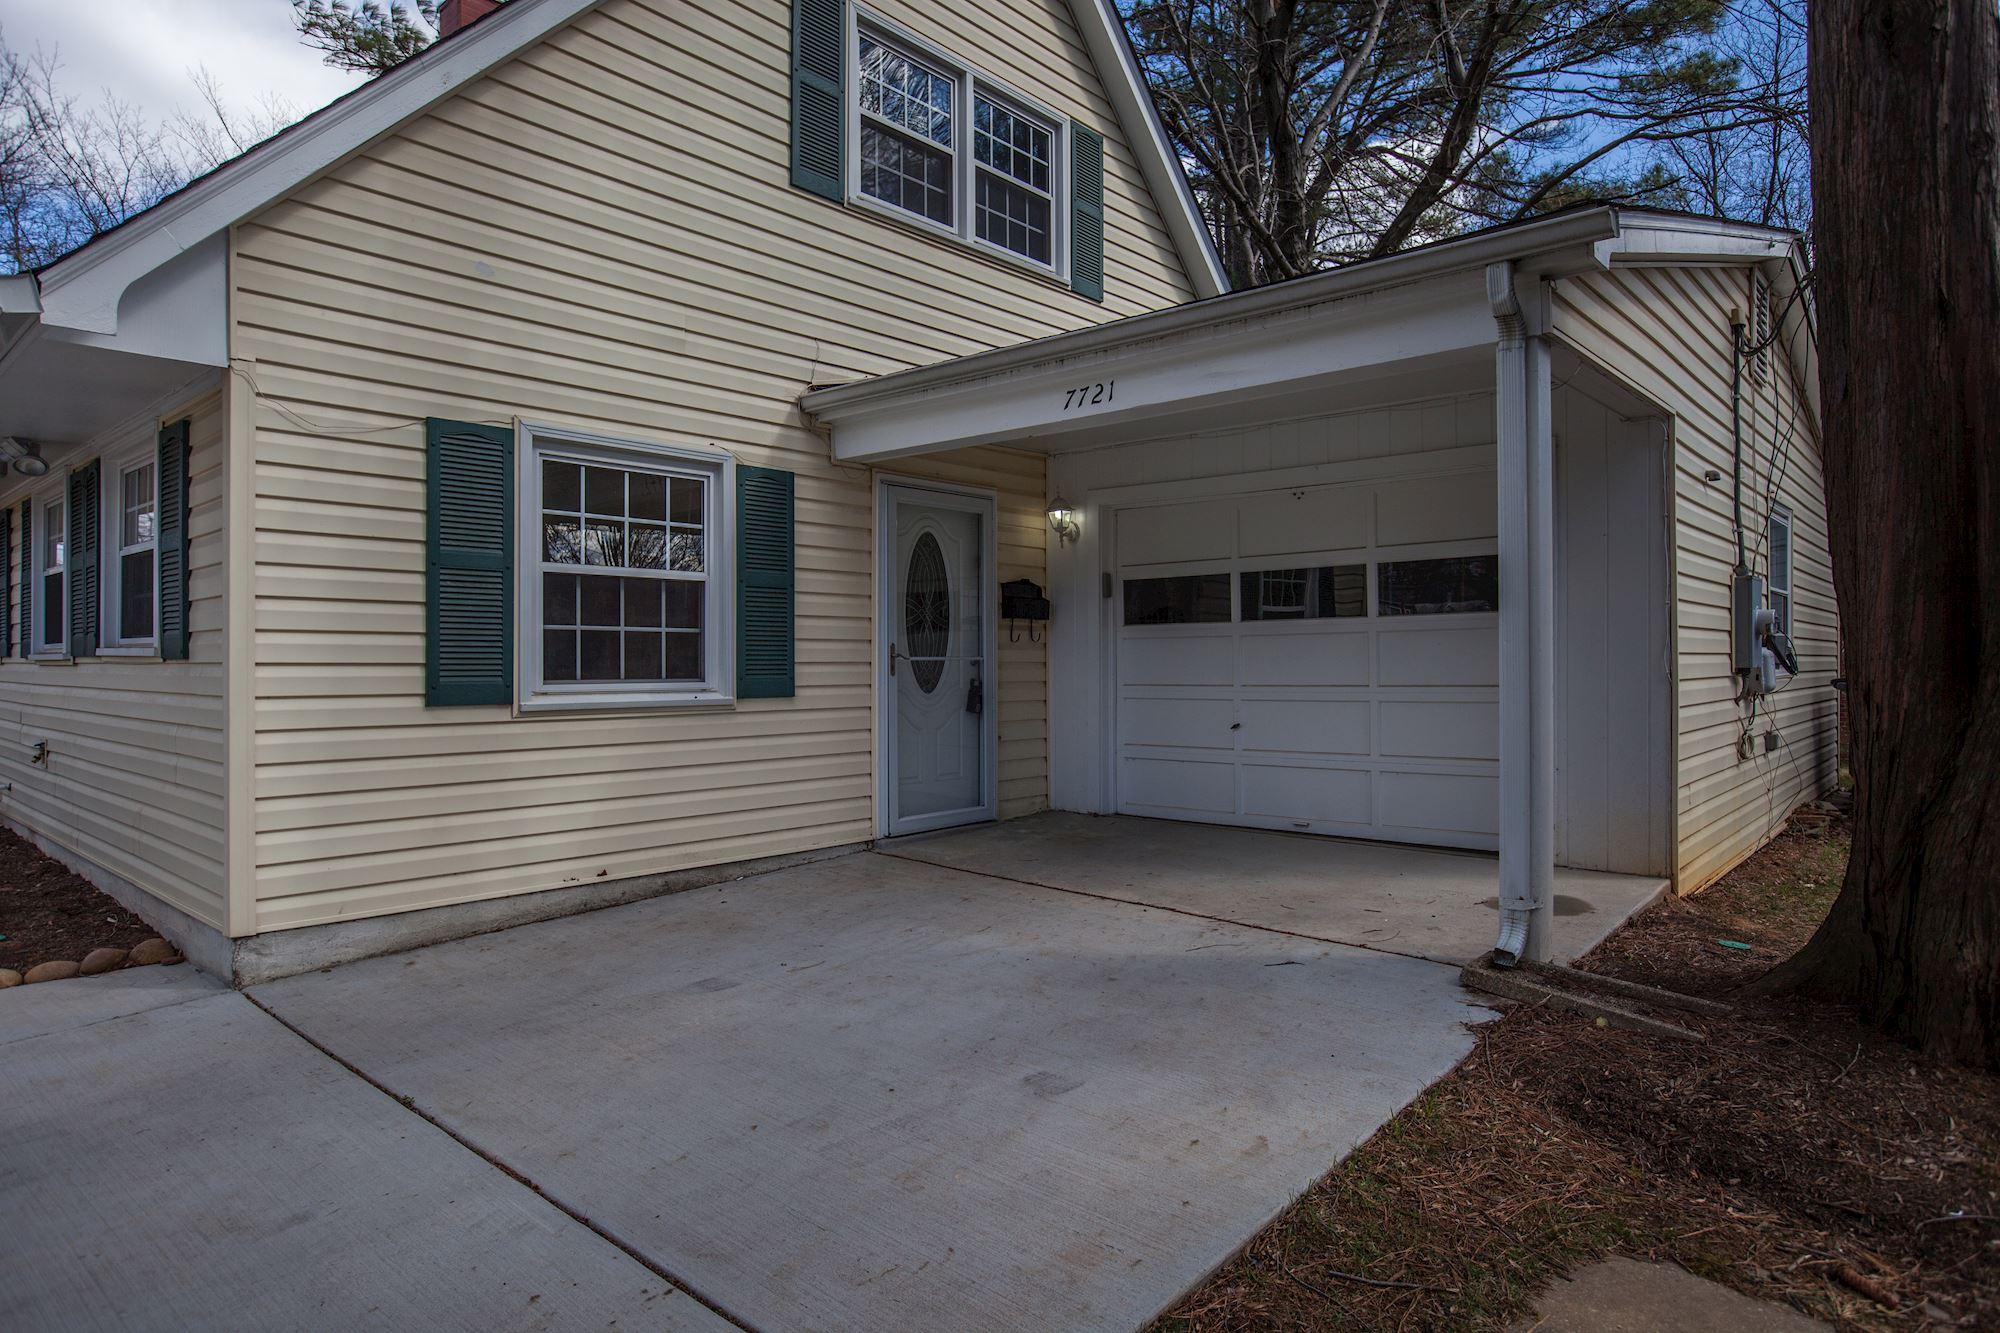 SOLD: 4 Bedroom Cape Cod in FALLS CHURCH